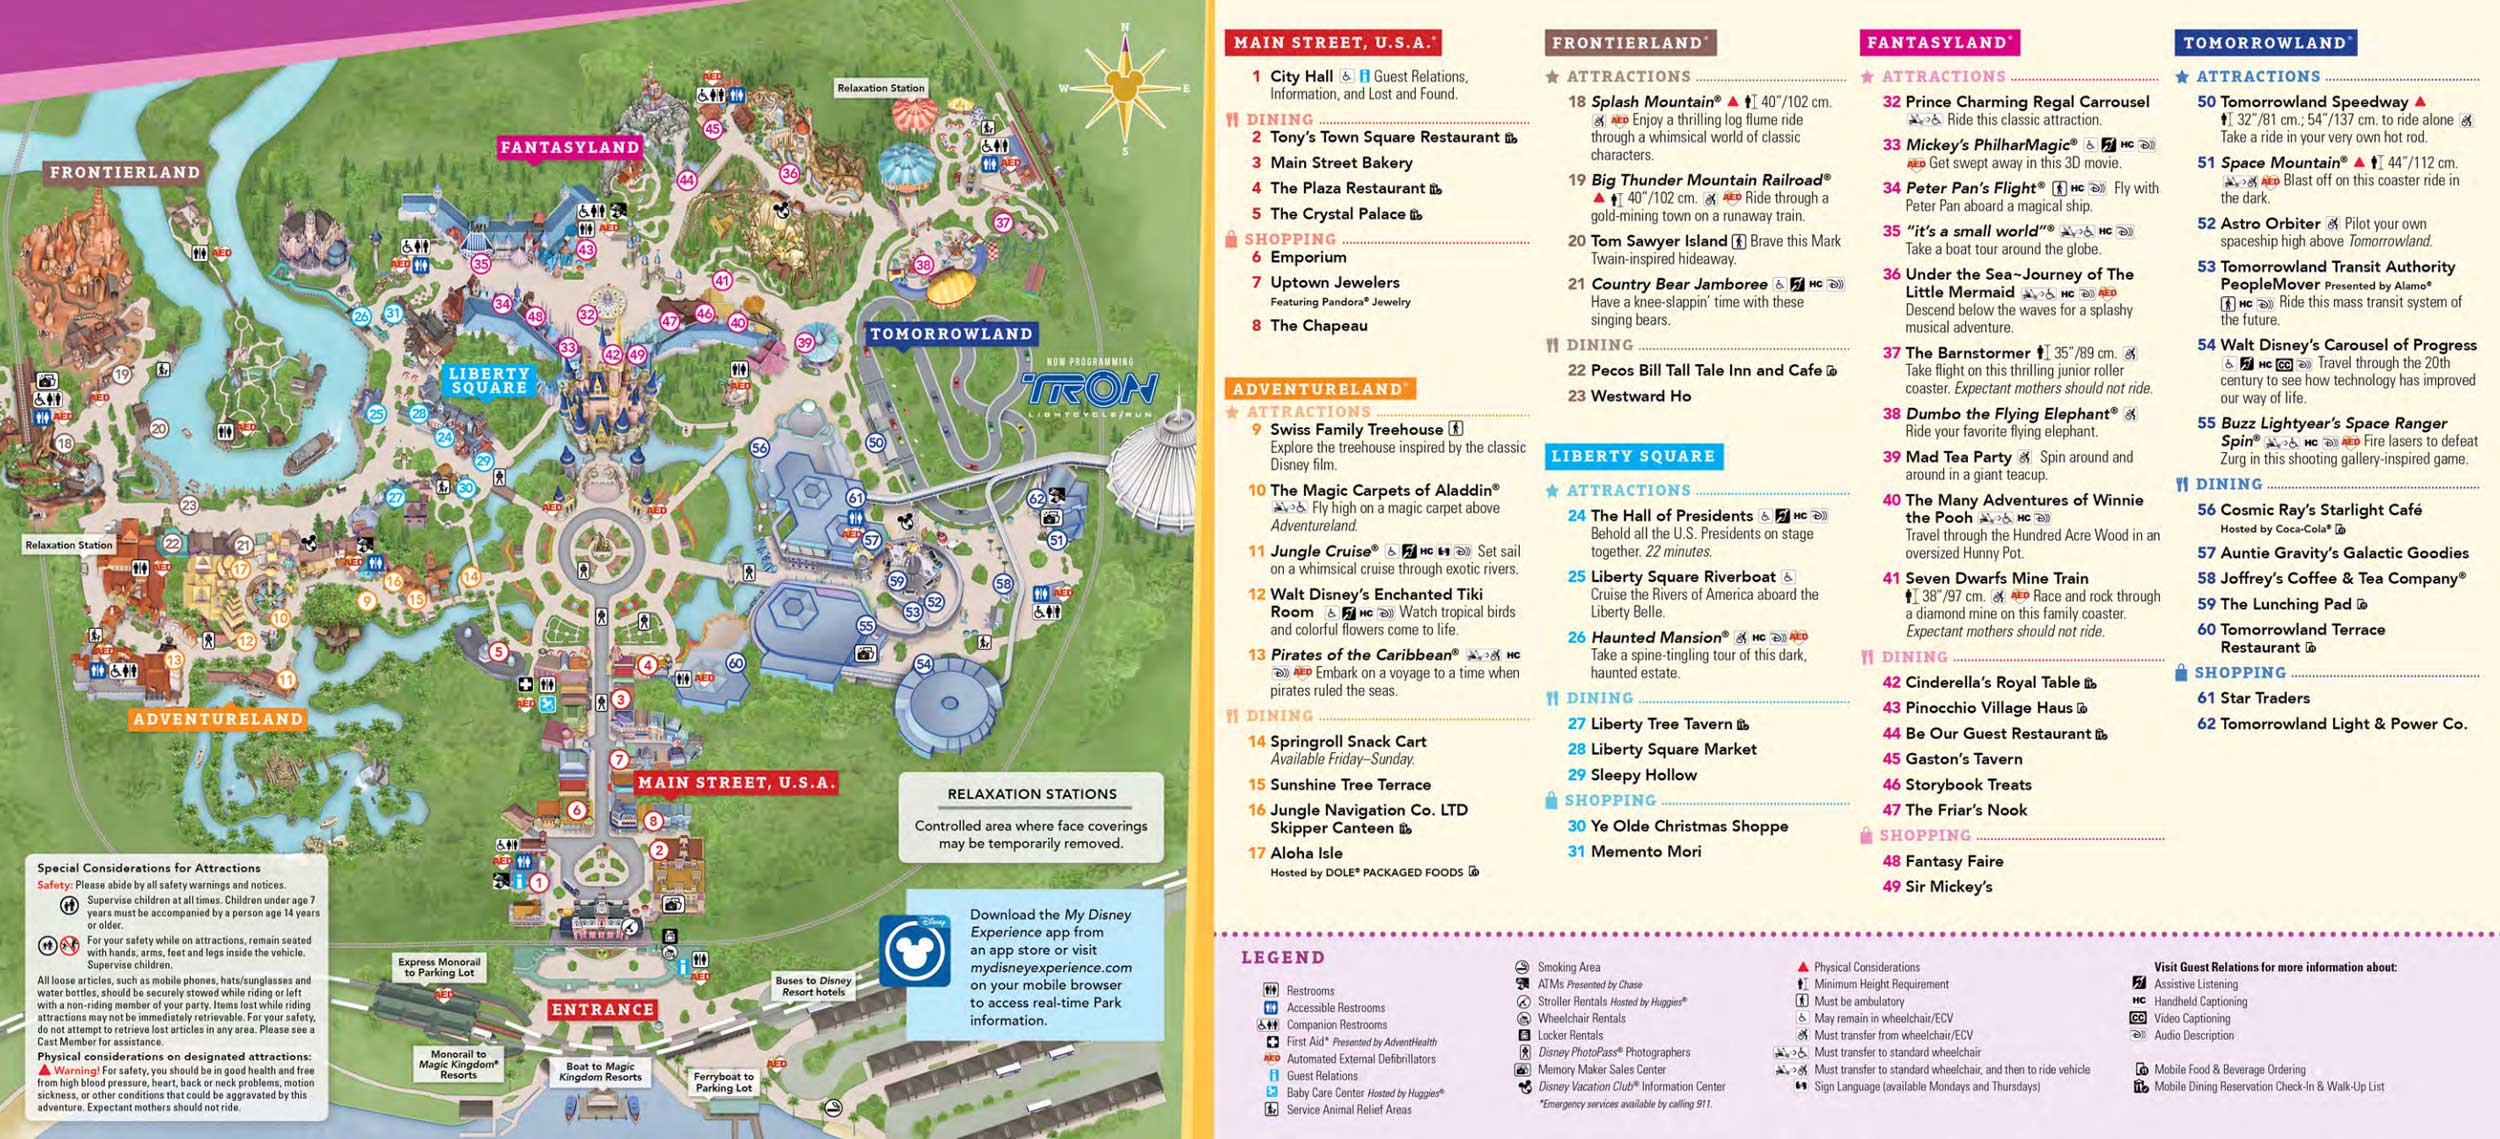 image regarding Printable Magic Kingdom Map called Magic Kingdom Park Map - Walt Disney World-wide